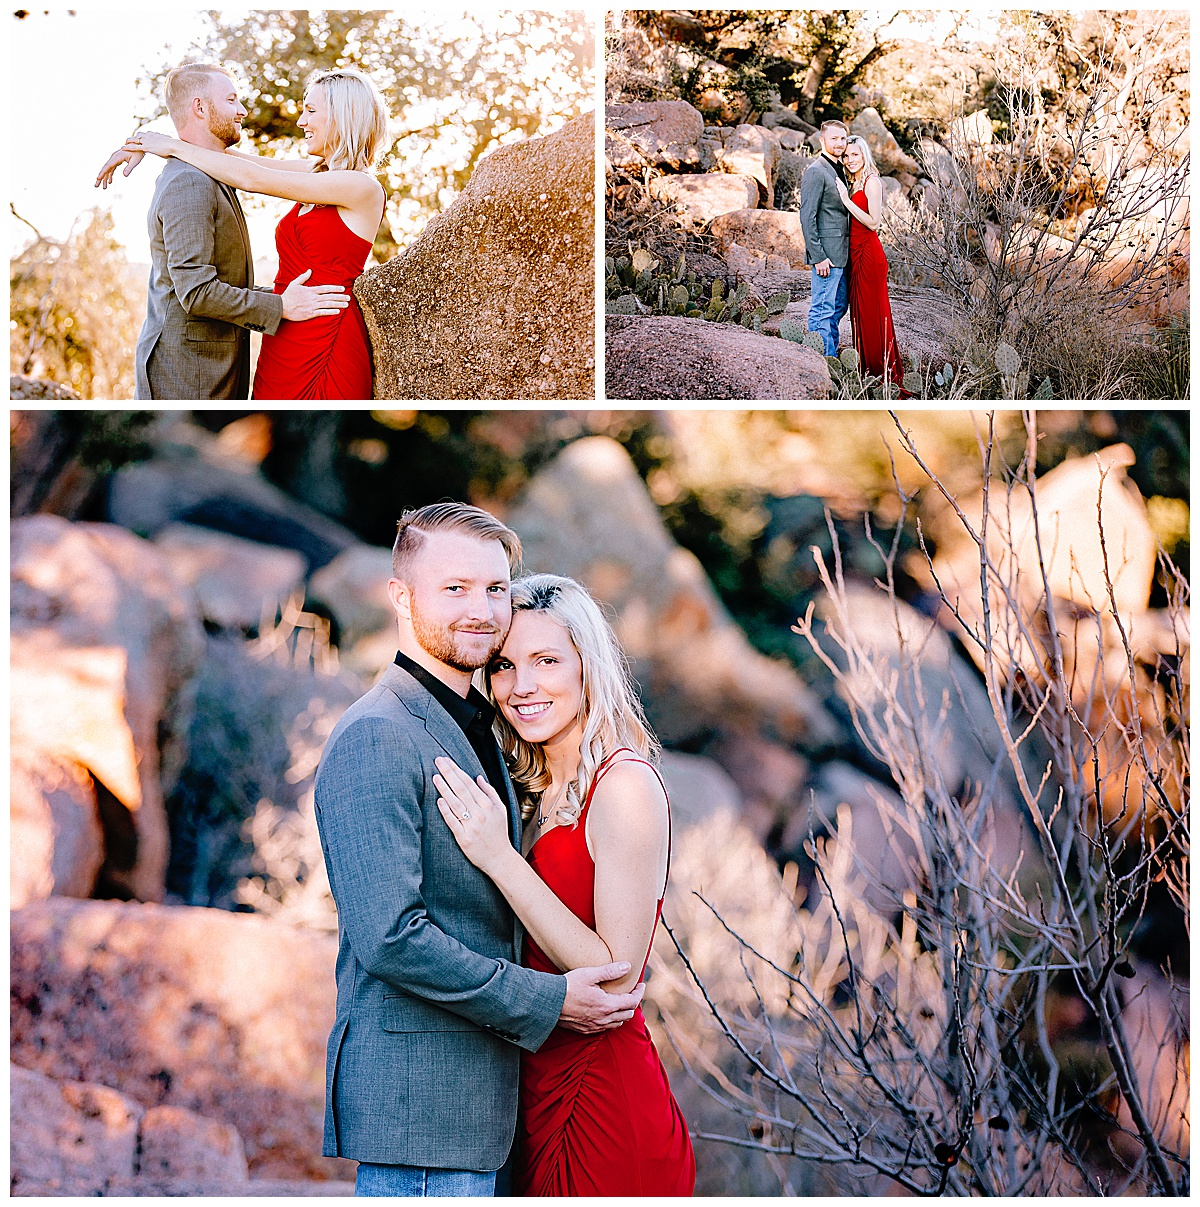 South-Texas-Wedding-Photographer-Engagement-Photos-Enchanted-Rock-Fredericksburg-Sunset-Couples-Carly-Barton-Photography_0013.jpg